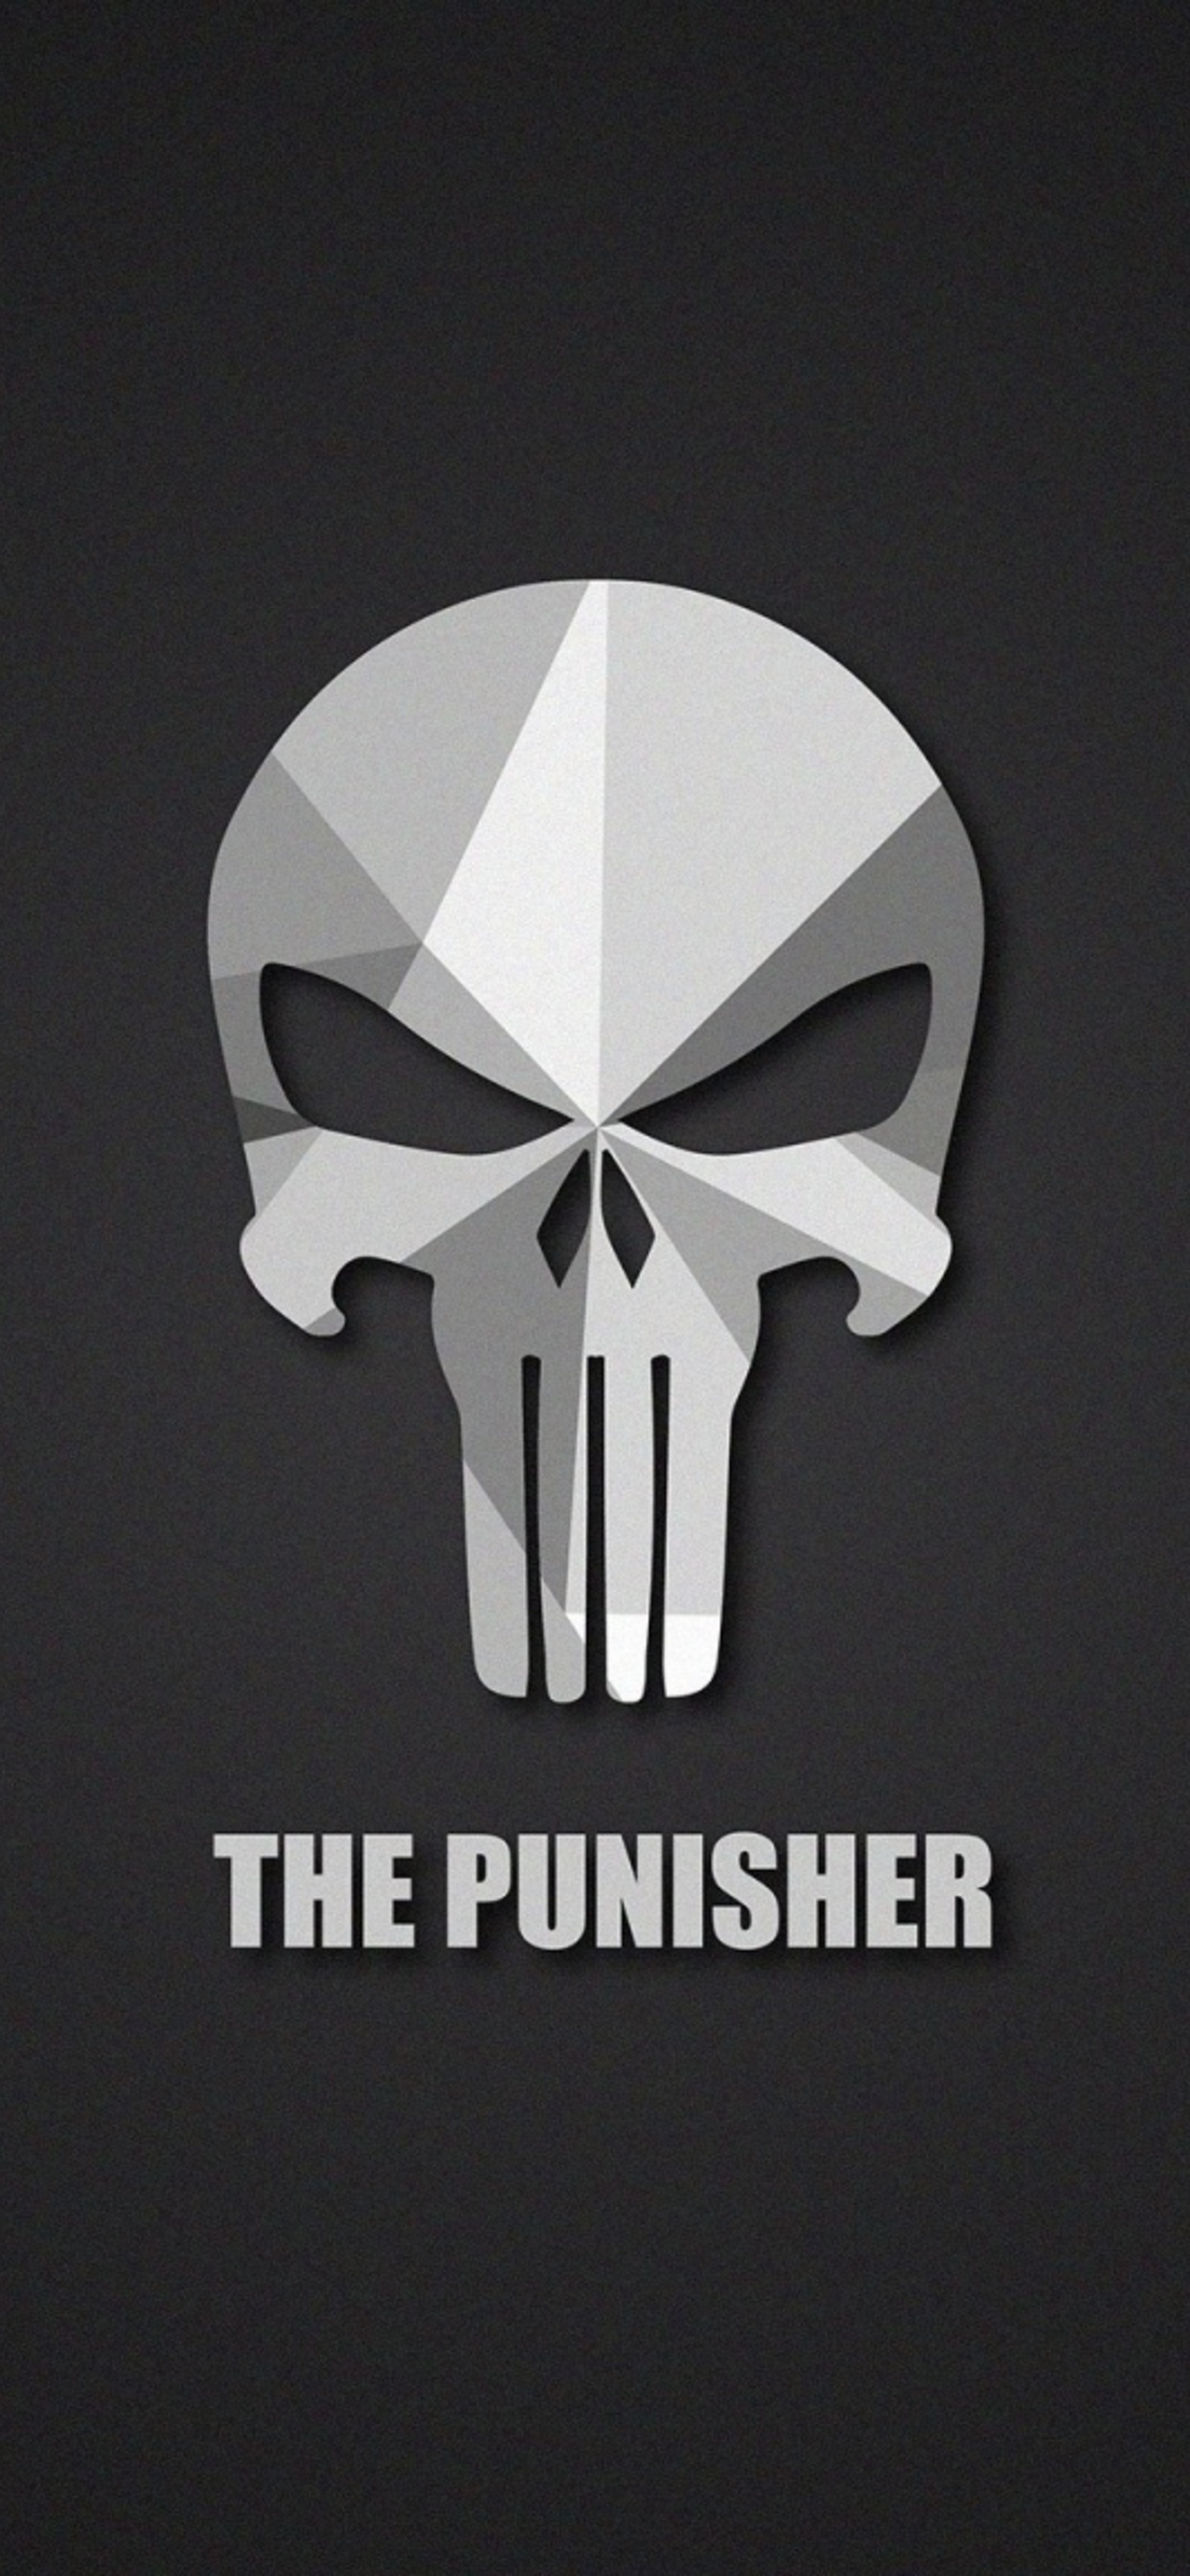 1242x2688 The Punisher Material Logo Iphone Xs Max Hd 4k Wallpapers